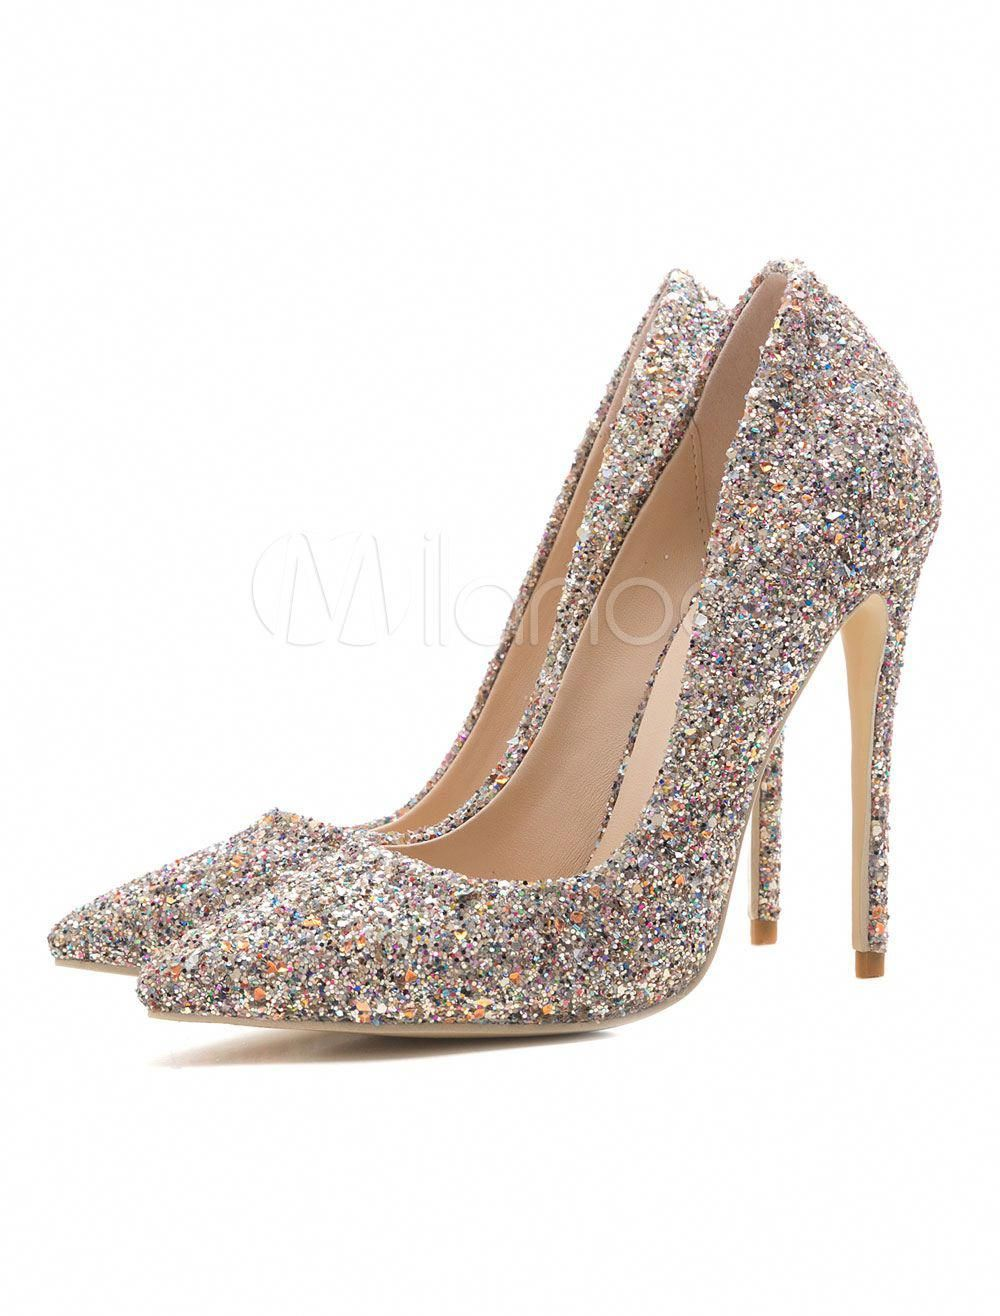 cd8c3d156260 Women Evening Shoes Glitter High Heel Prom Shoes Pointed Toe Gold Slip On  Pumps  Promshoes